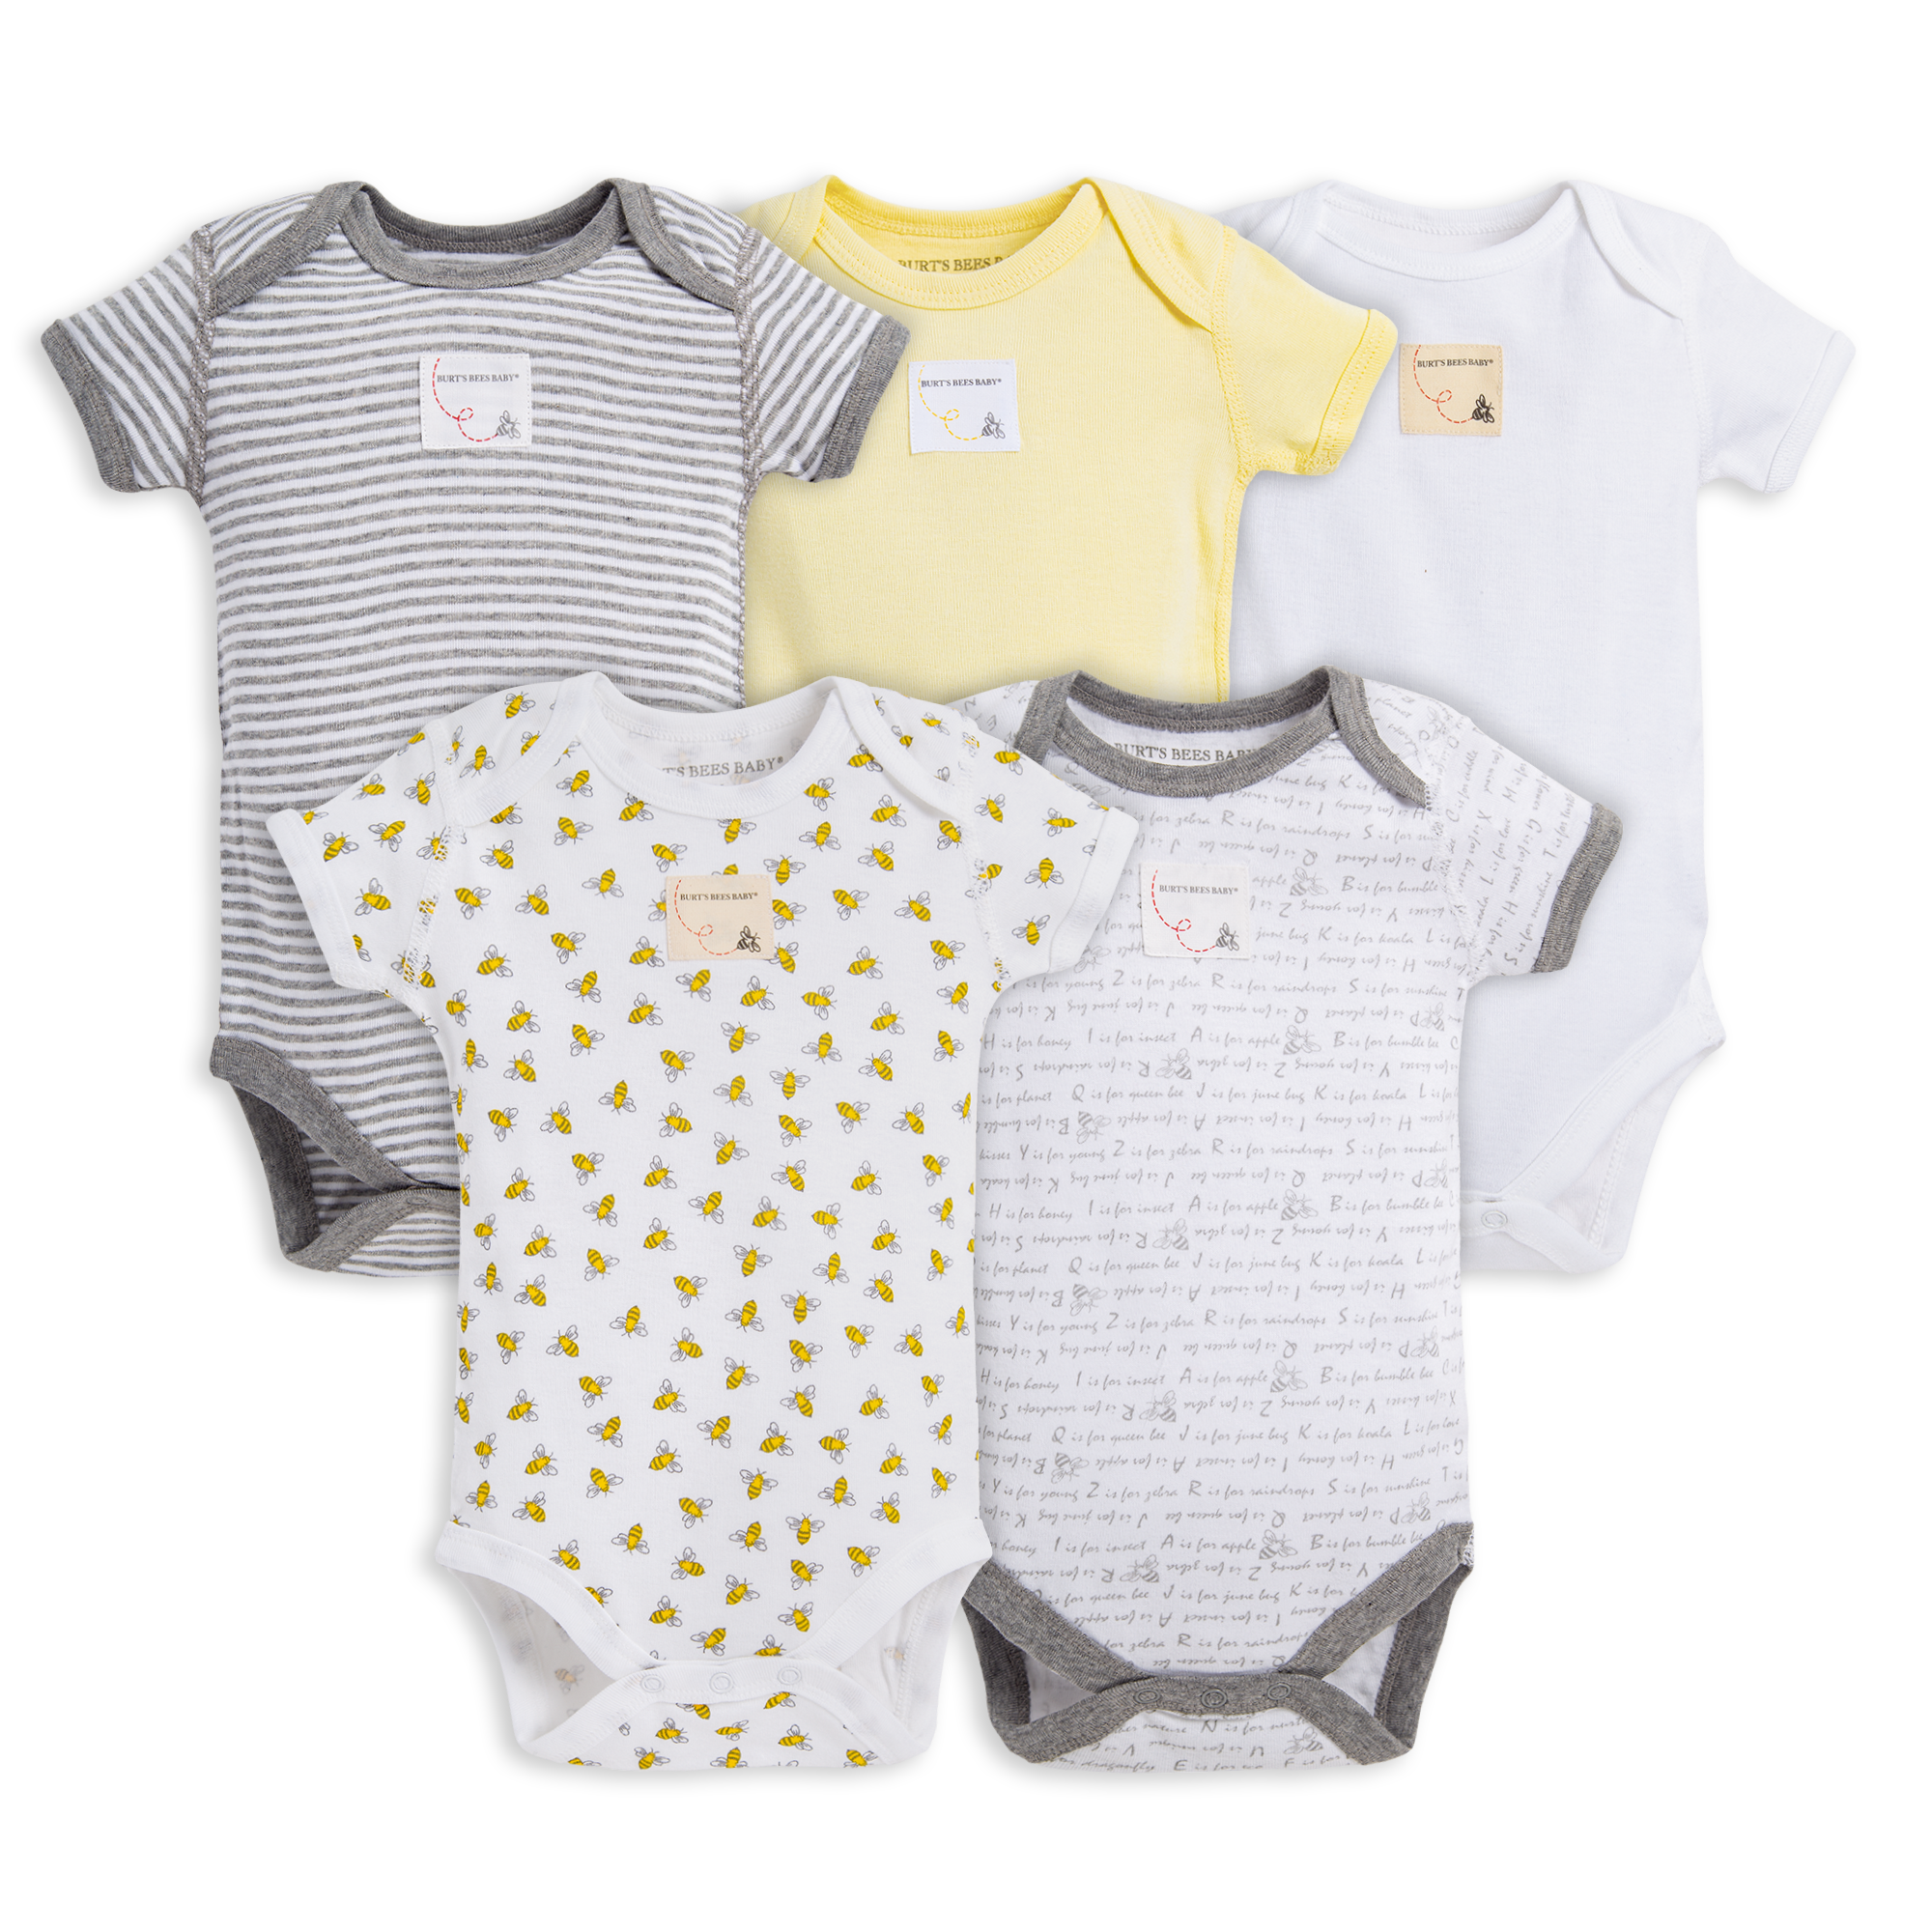 BabyGear Grow With Me 5 Baby Bodysuits // One-Pieces - 3-6 Mo 0-3 Mo; 2 3